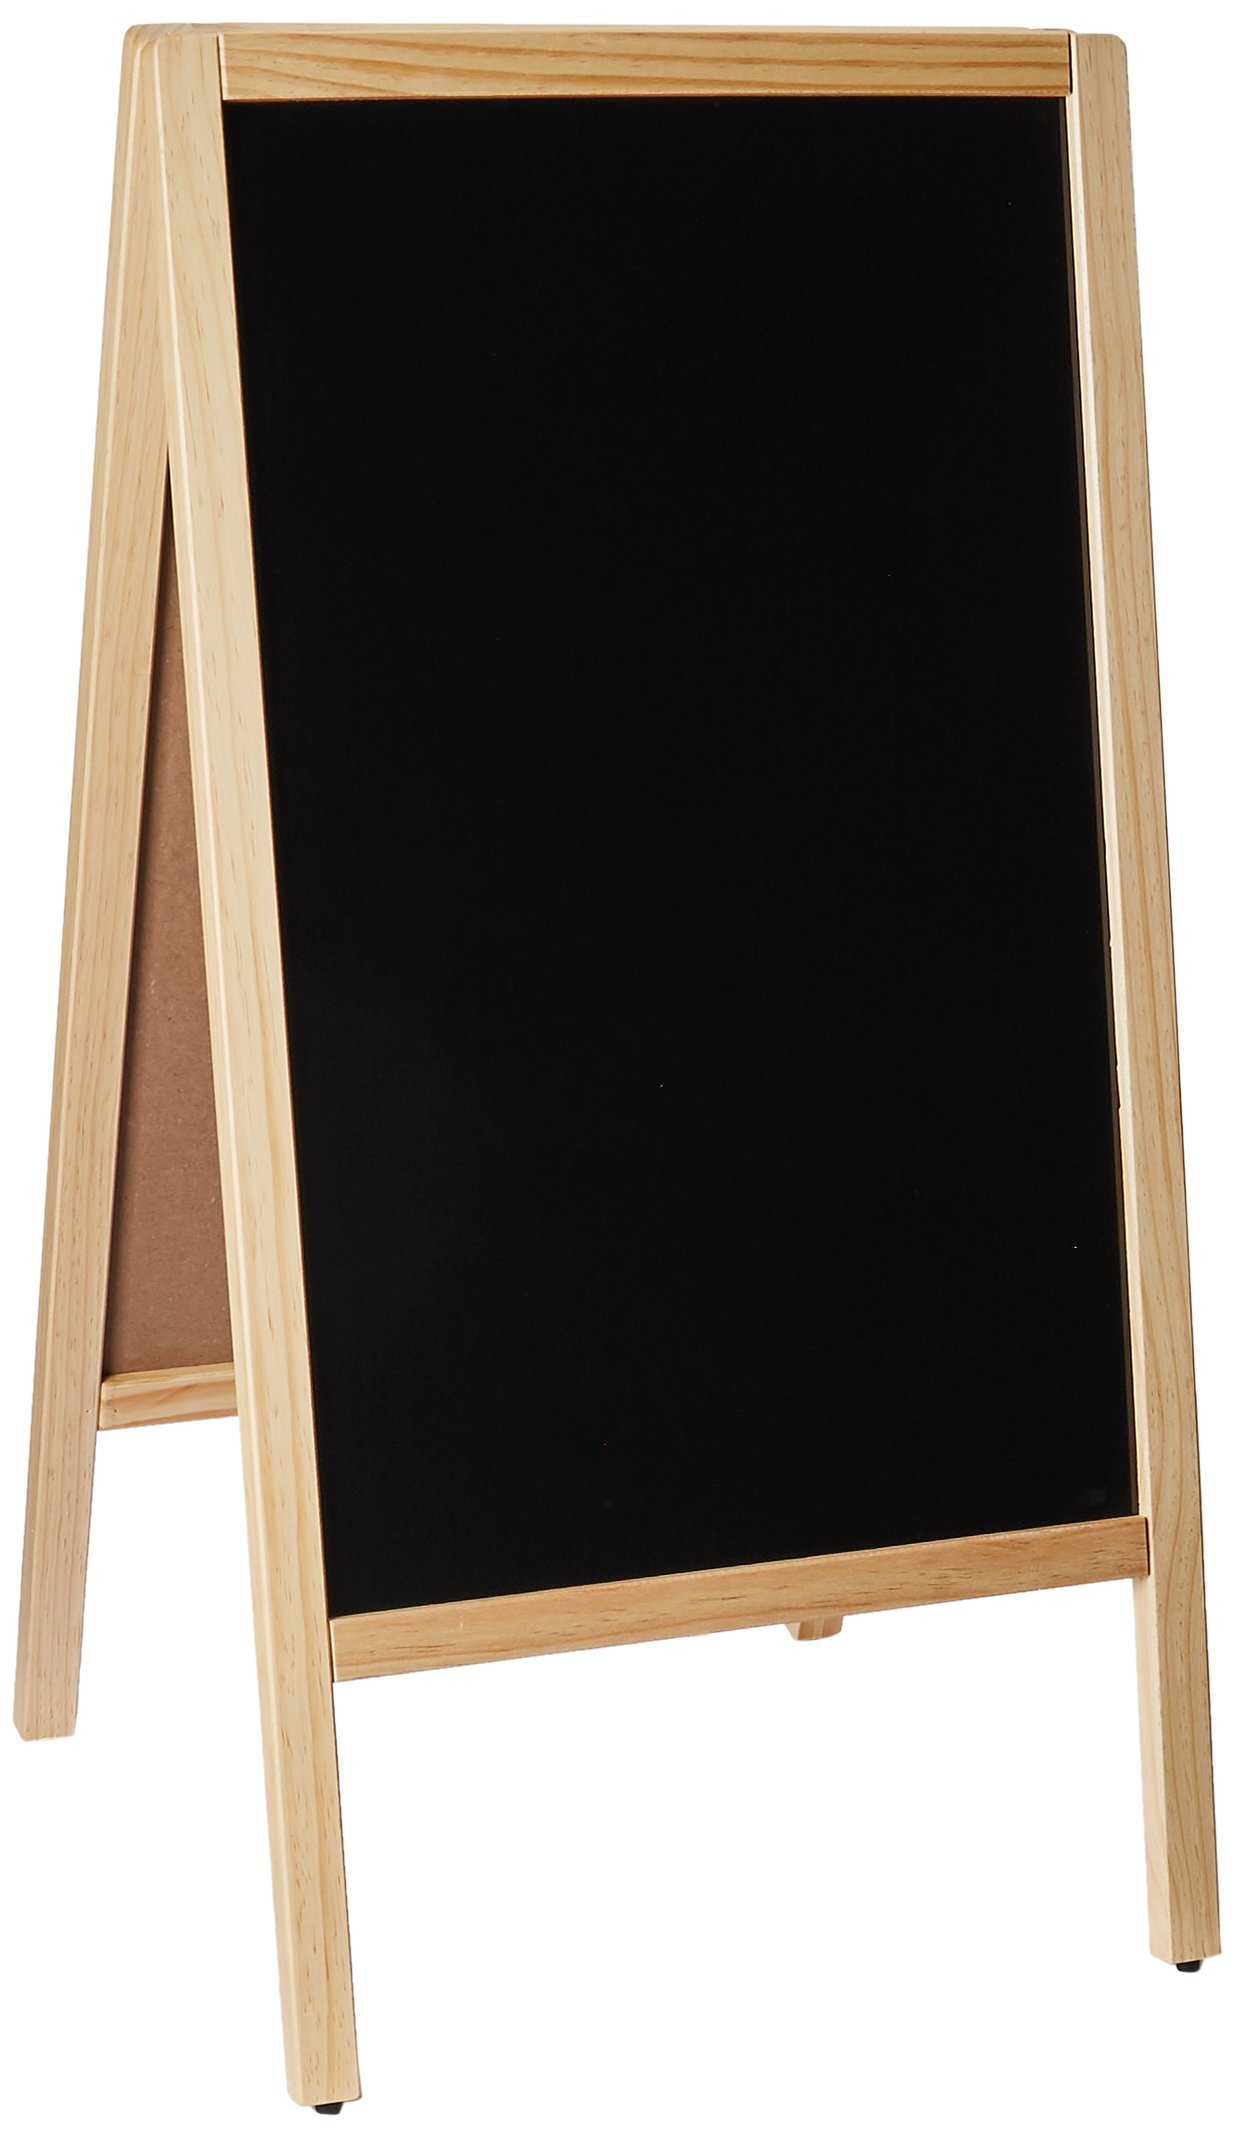 Winco MBAF-1 Sidewalk Markerboard with Natural Wood A-Frame, 39.5 by 20.25-Inch